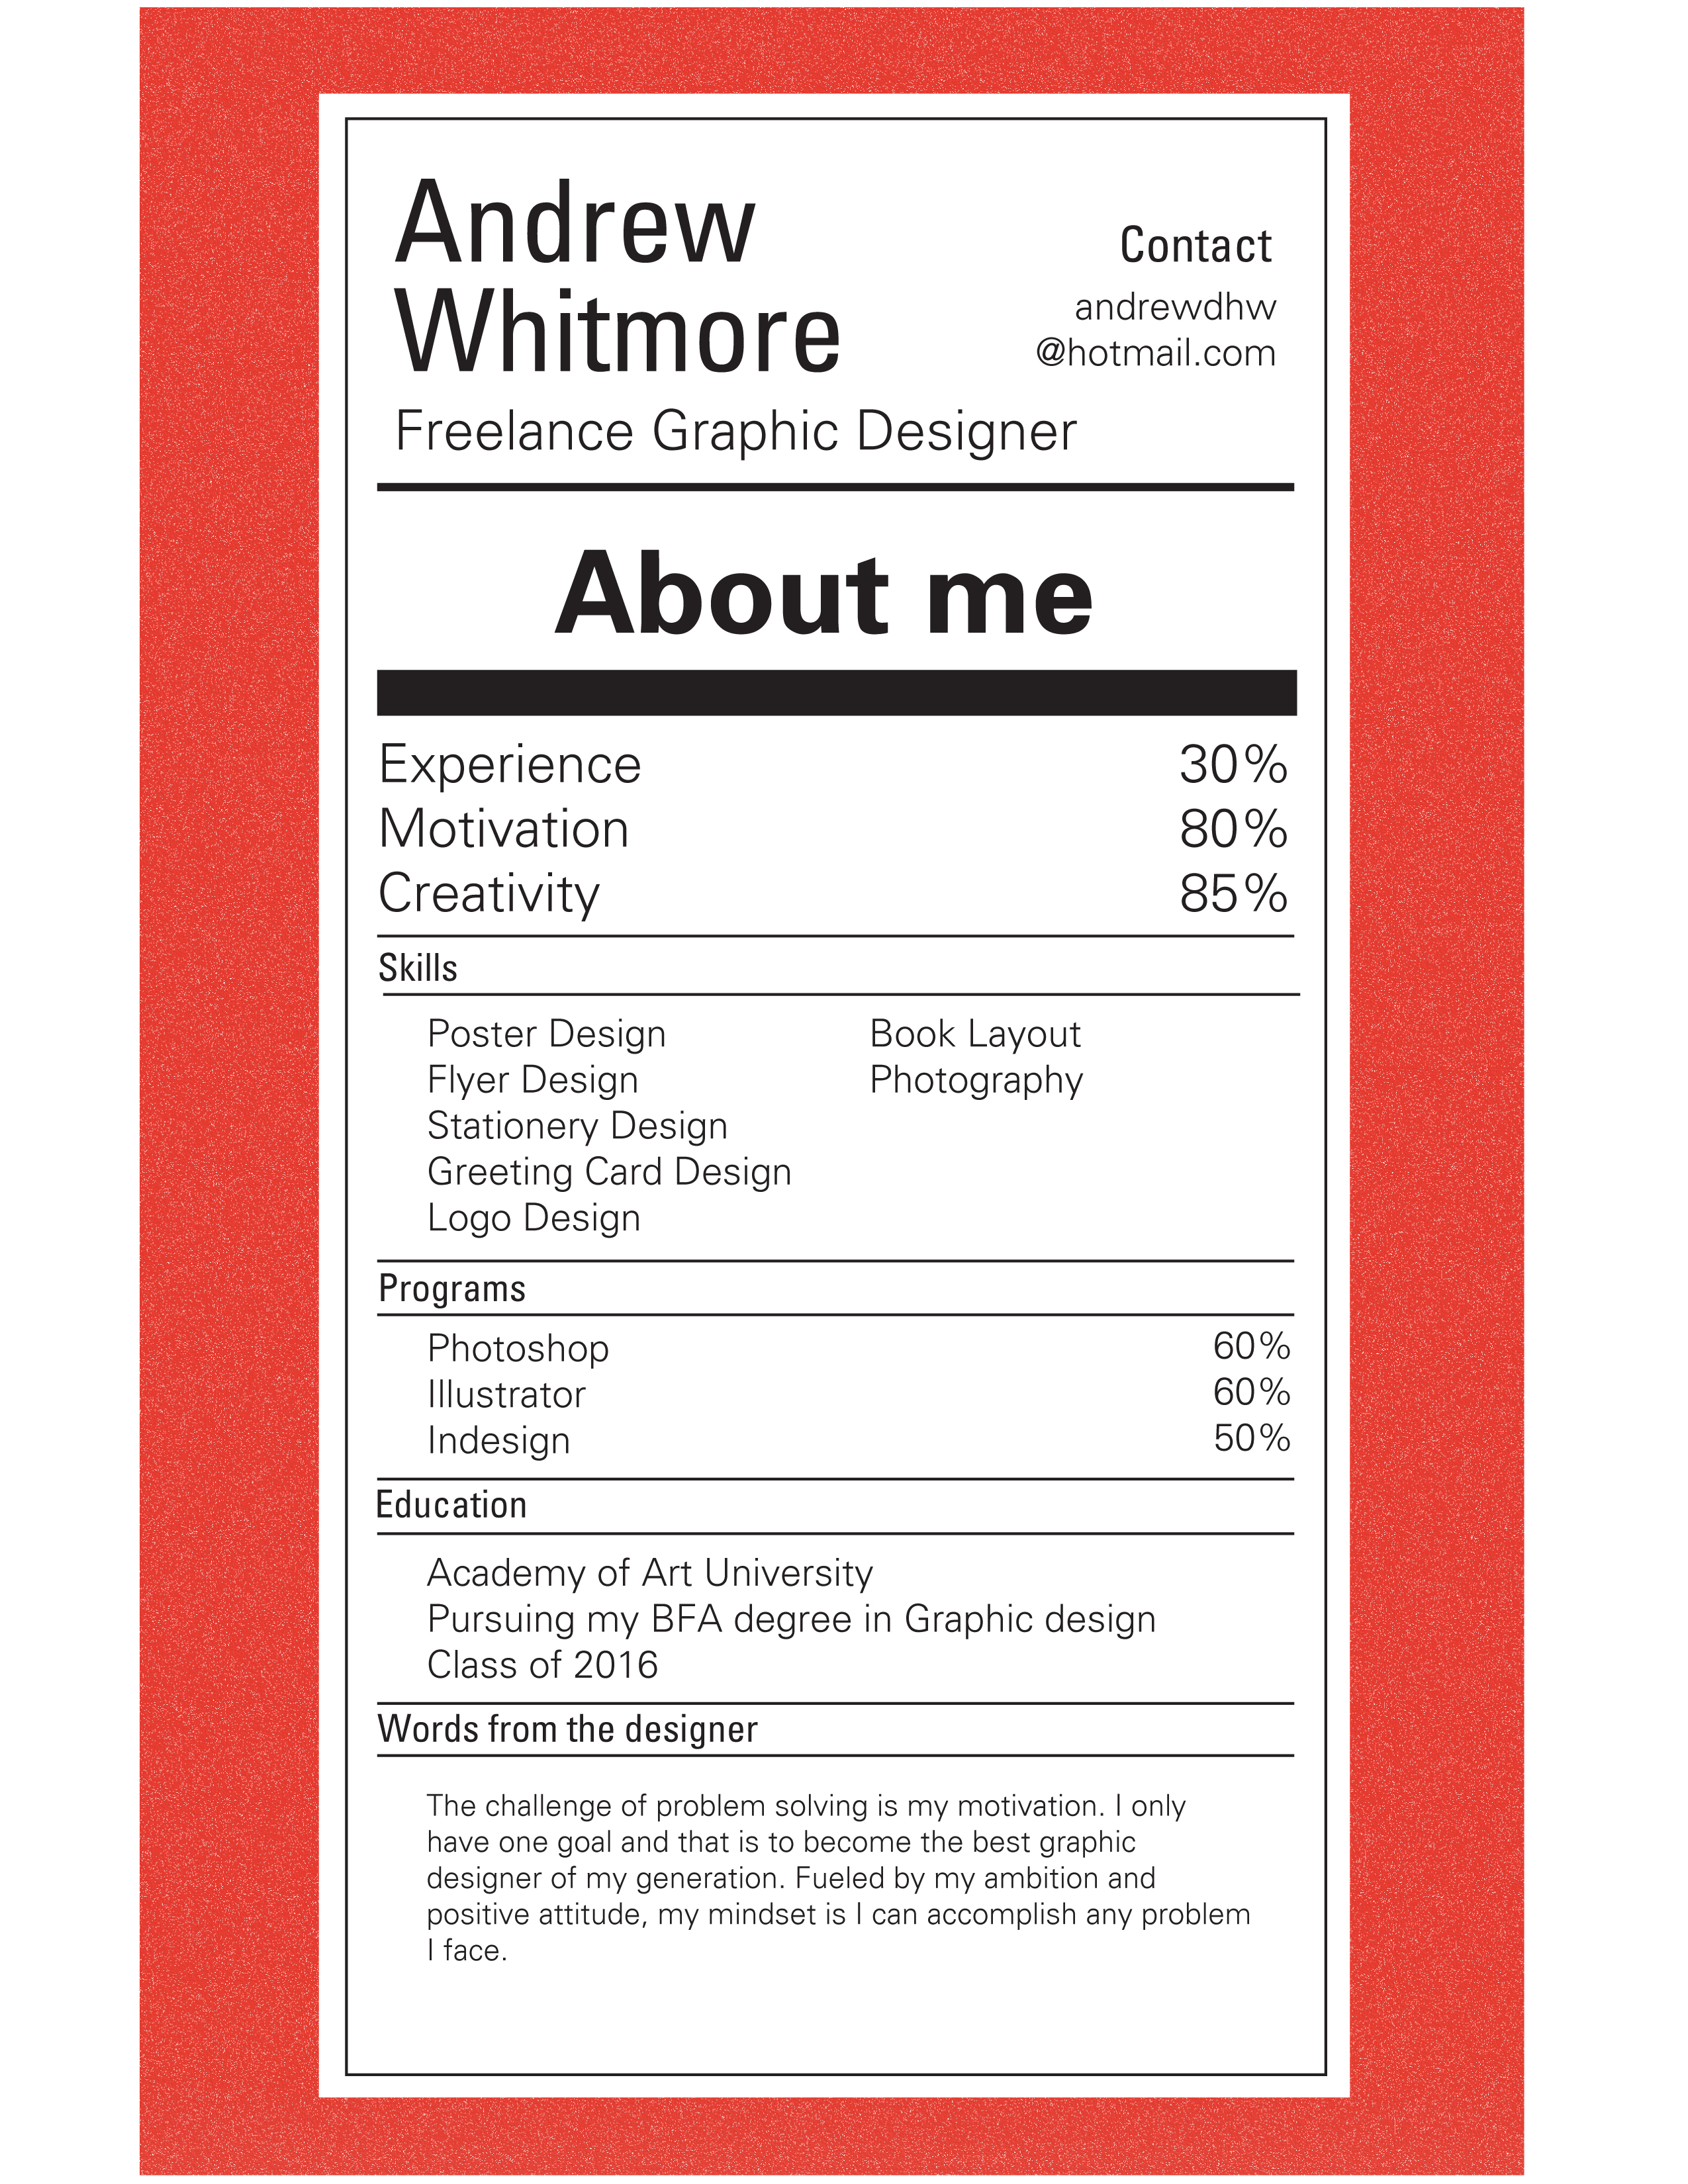 constructing a resume sample customer service resume constructing a resume human resources resume resume writing tips design awhitmoreportfolio